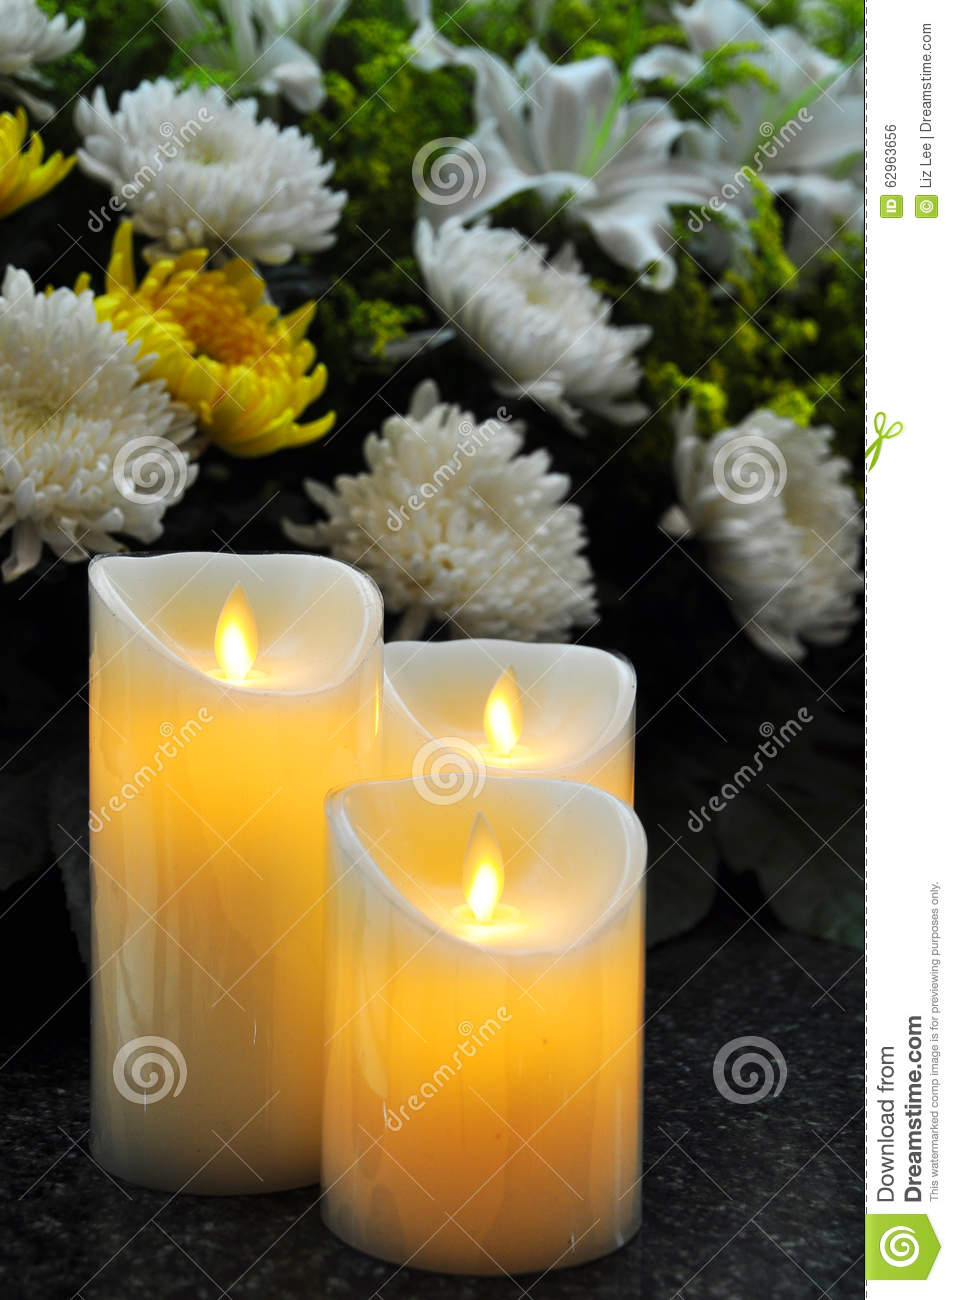 Funeral Flowers And Candles Stock Photo - Image: 62963656